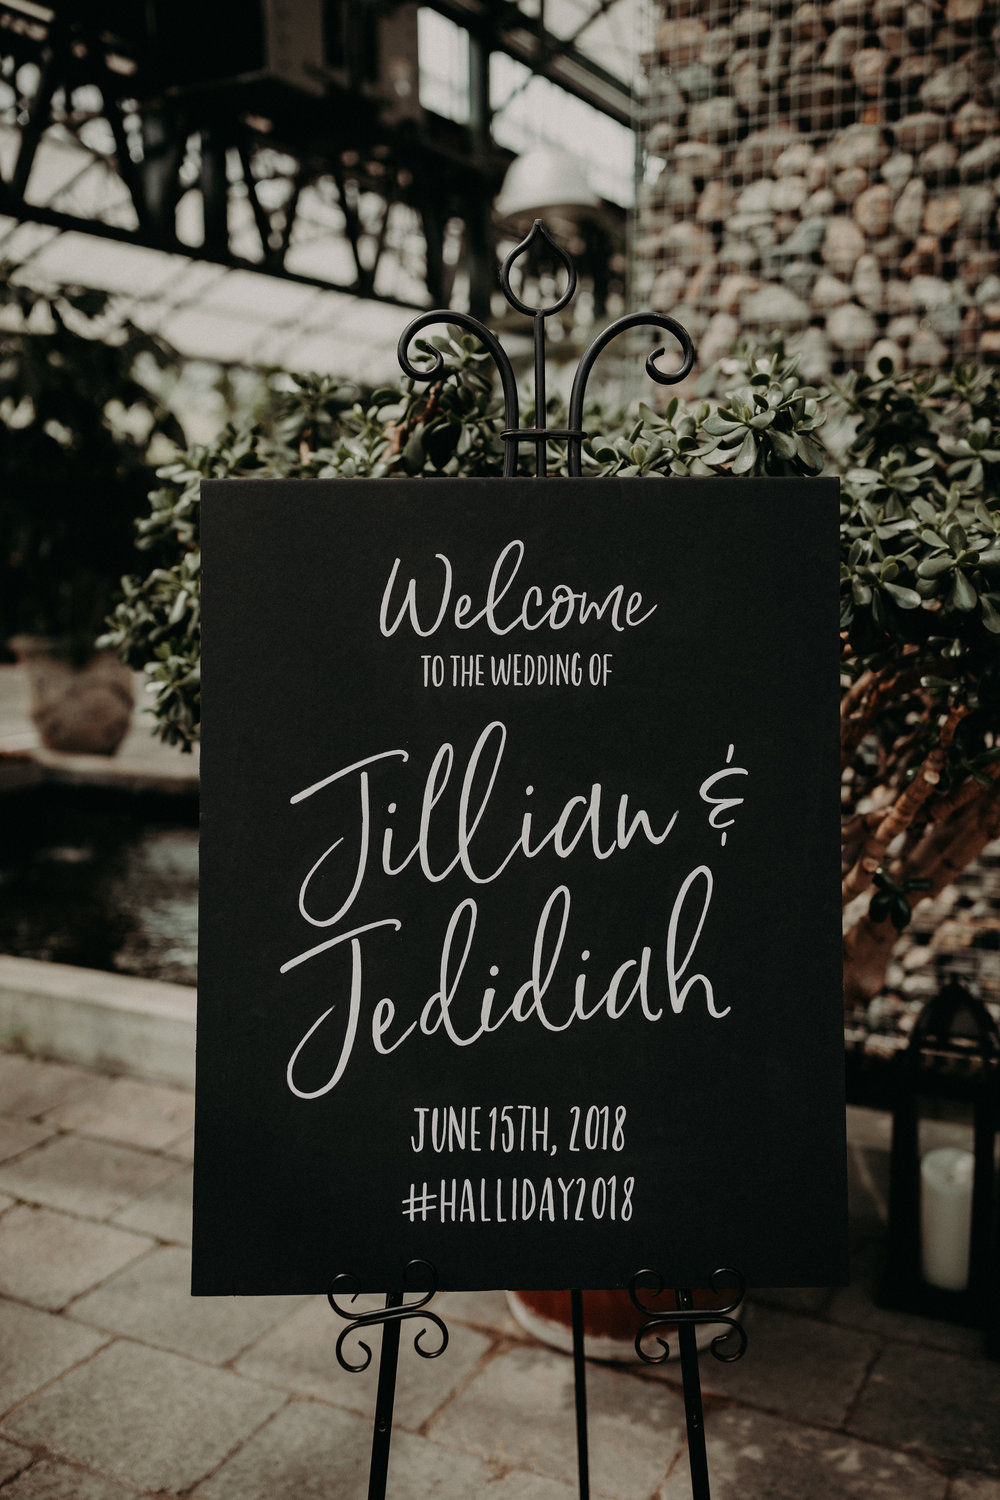 (0003) Jillian + Jedidiah (Wedding).jpg